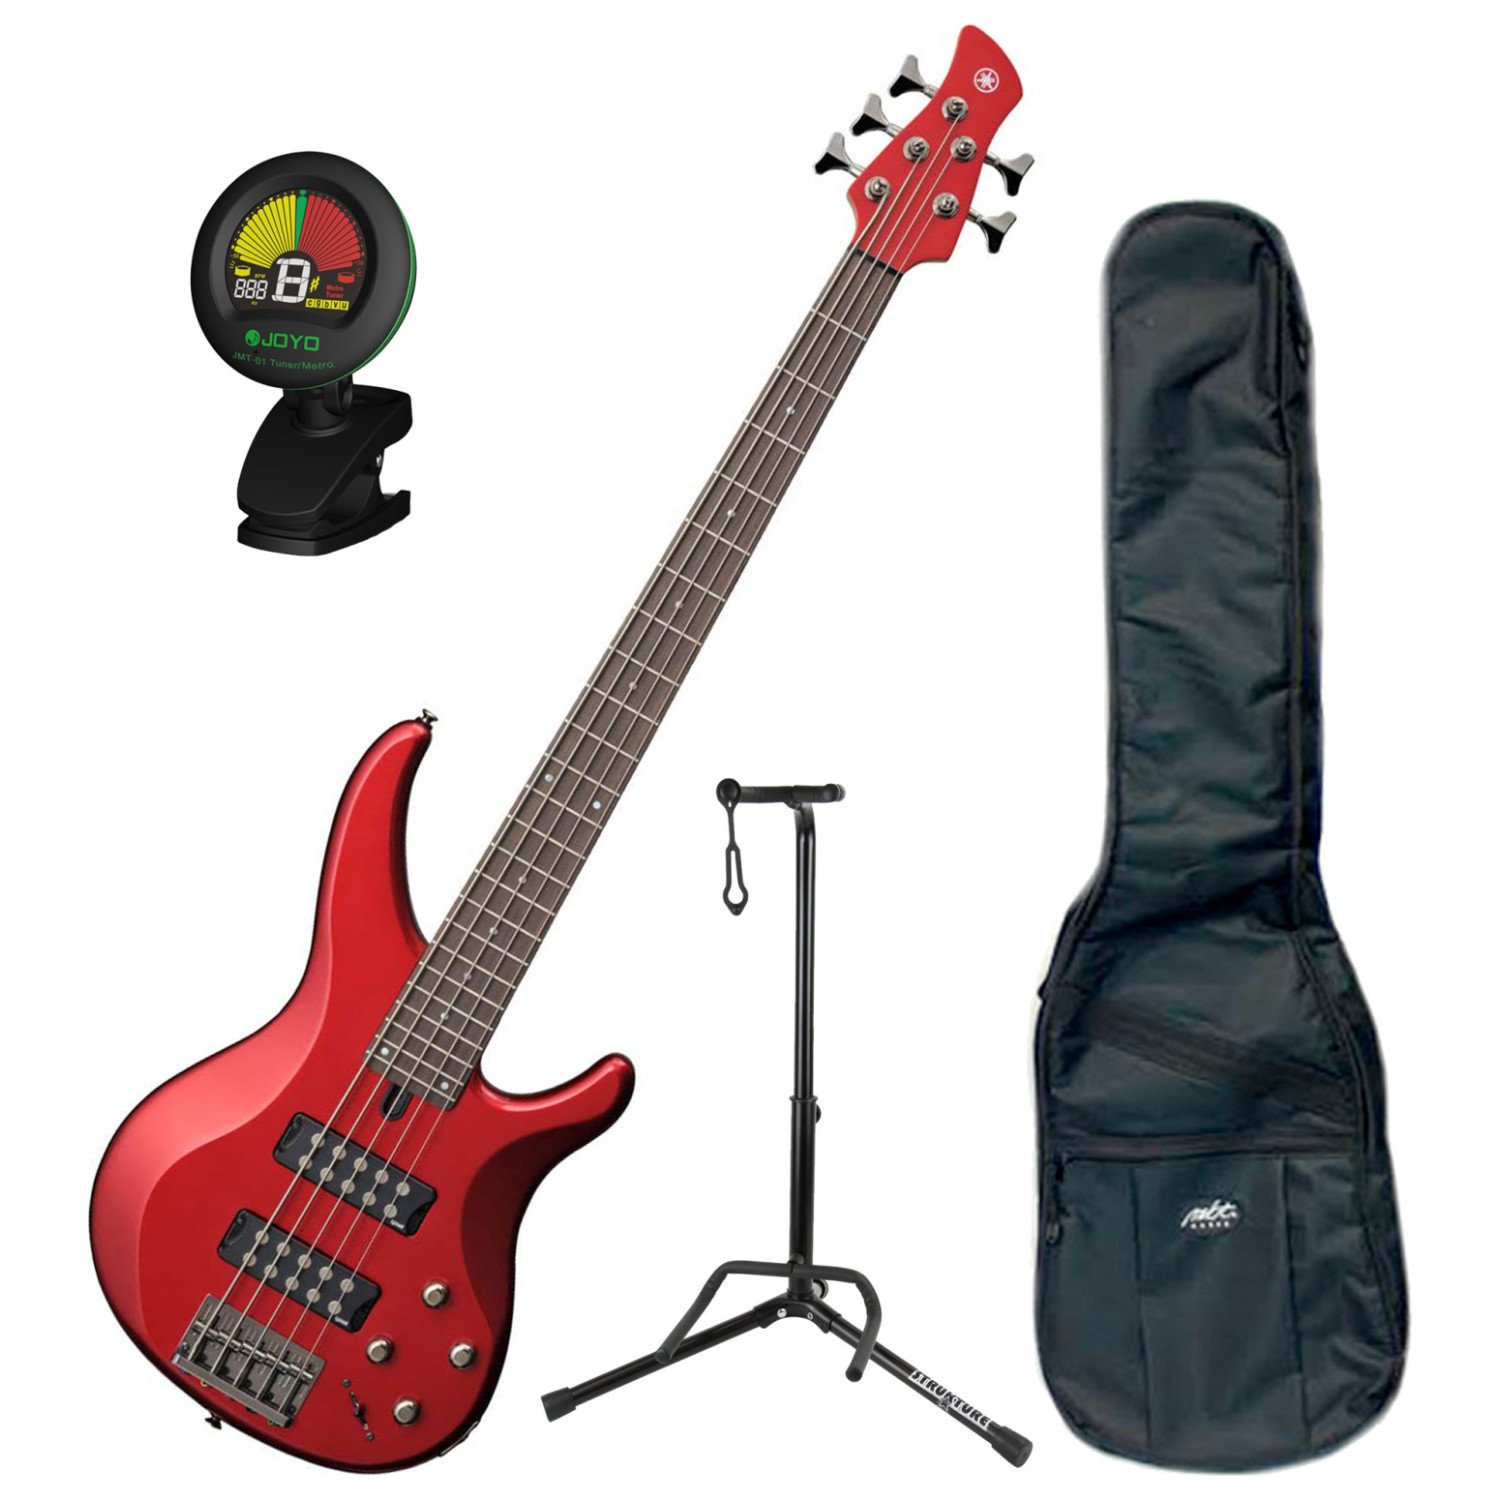 Yamaha TRBX305 CAR TRBX-305 Candy Apple Red 5 String Bass Guitar w/ Gig Bag, Stand, and Tuner